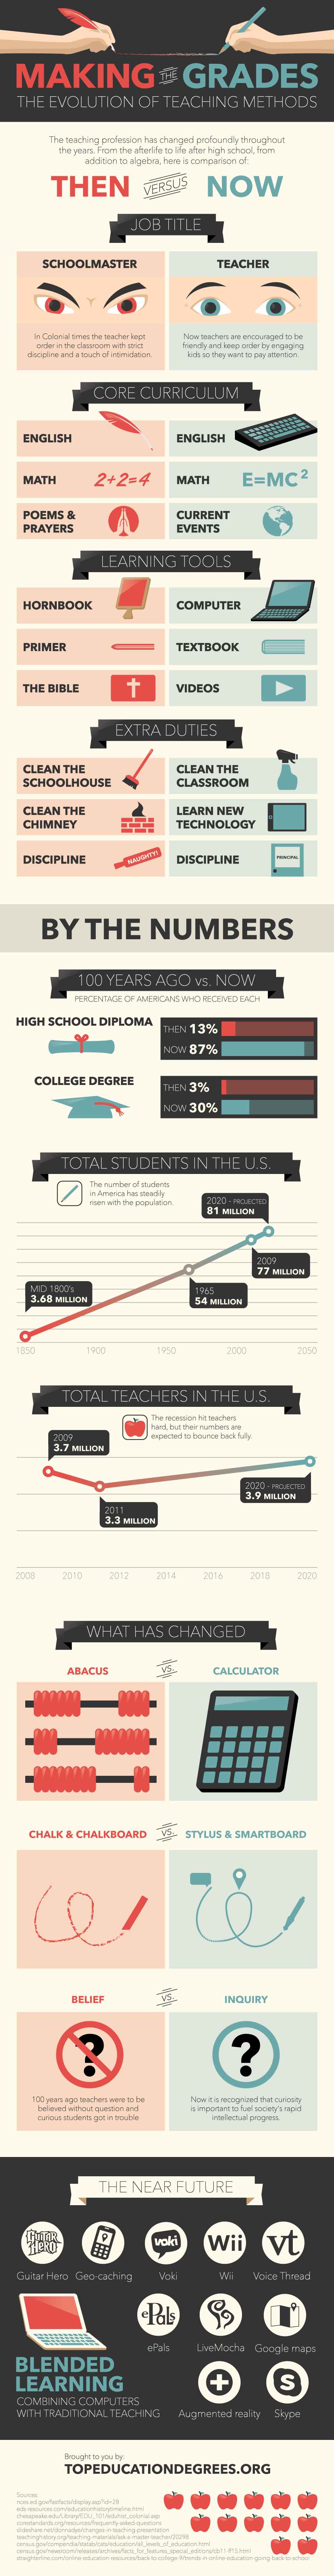 The-Evolution-of-Teaching-Methods-Infographic